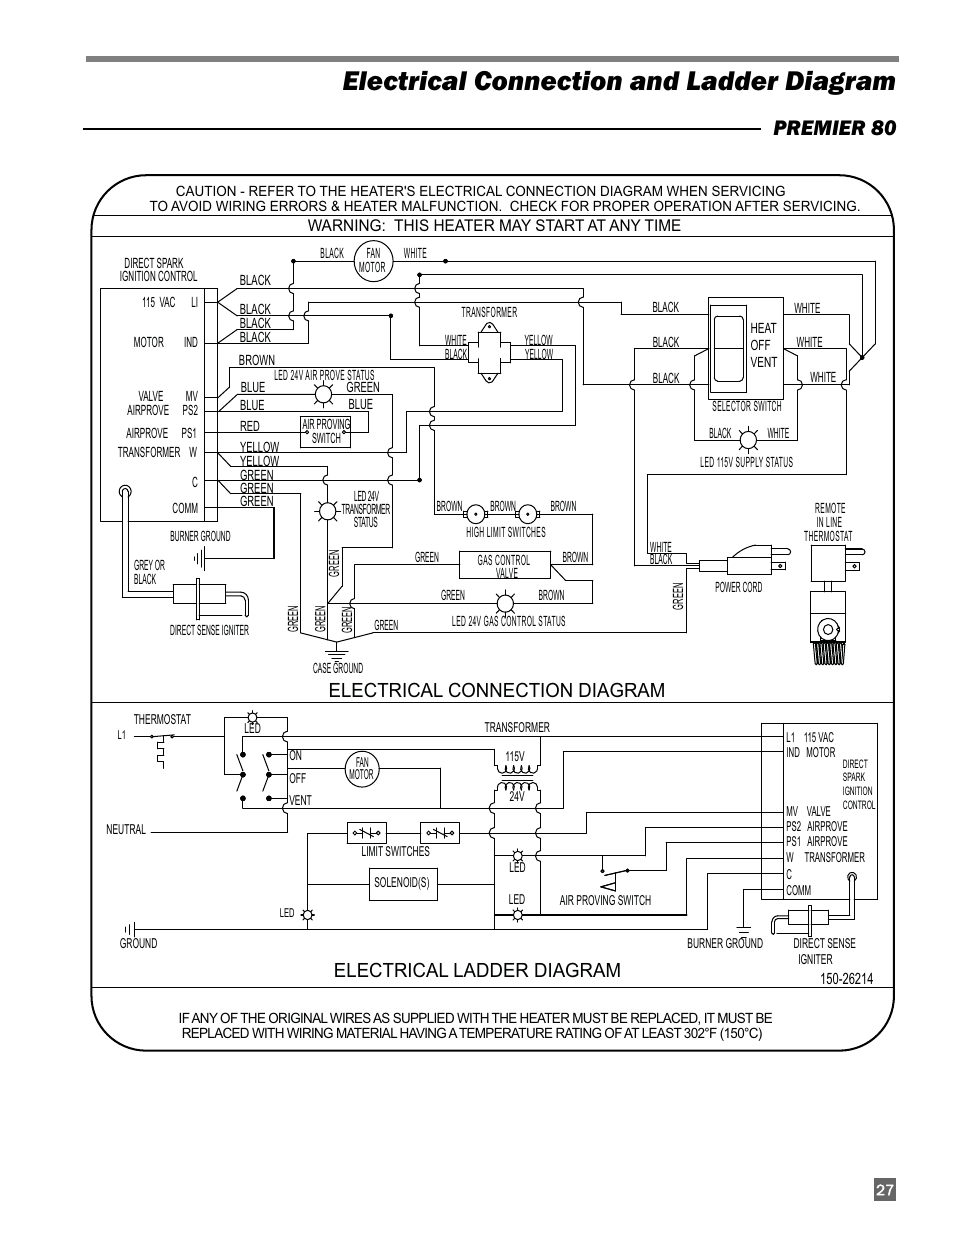 hight resolution of electrical connection and ladder diagram premier 80 electrical connection diagram l b white 170 premier user manual page 27 34